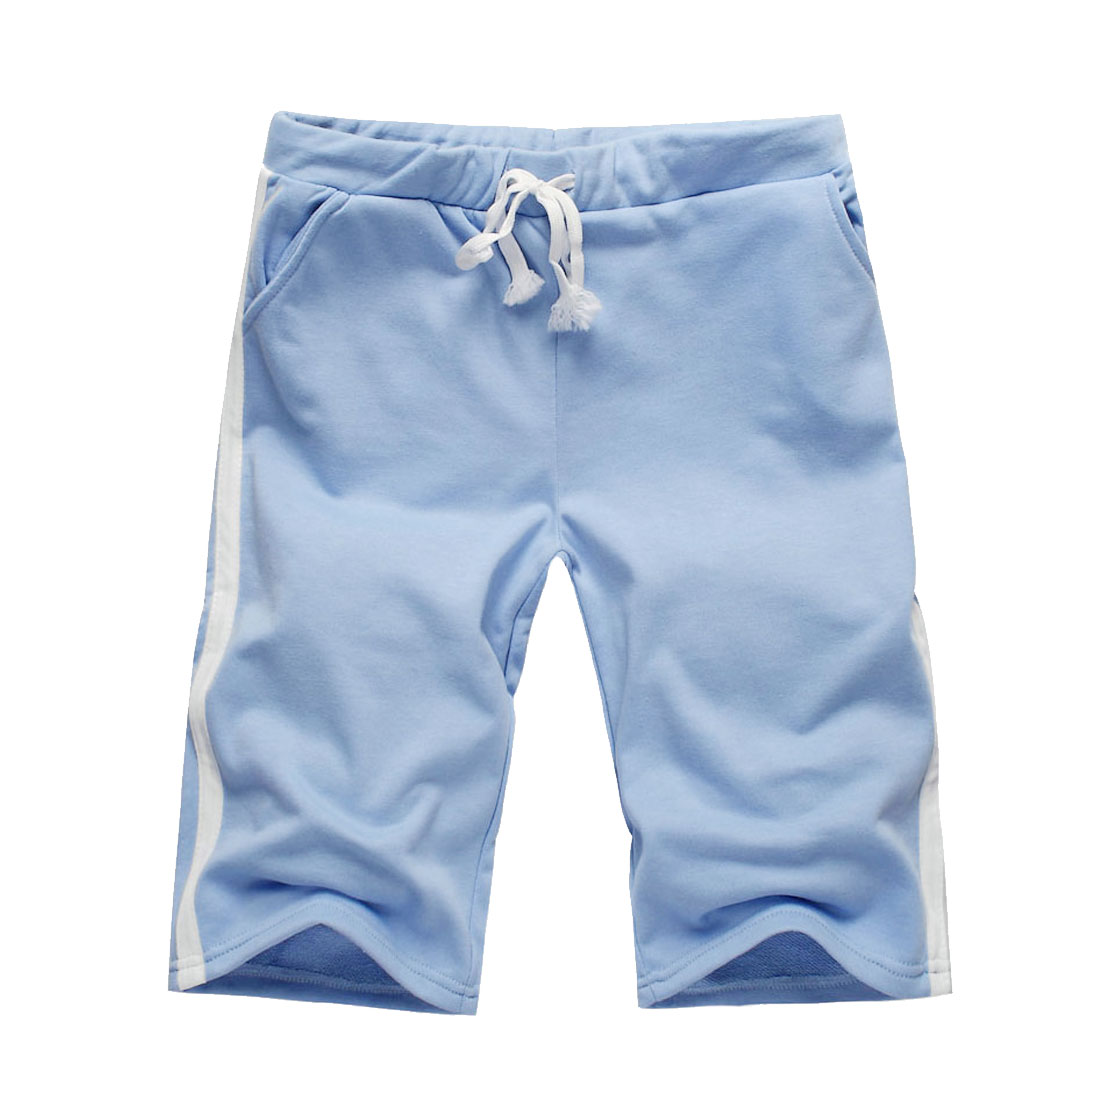 Mens Light Blue Casual Sports Summer Rope Drawstring Short Trousers Pants Shorts XL 616-K54/S (W29)